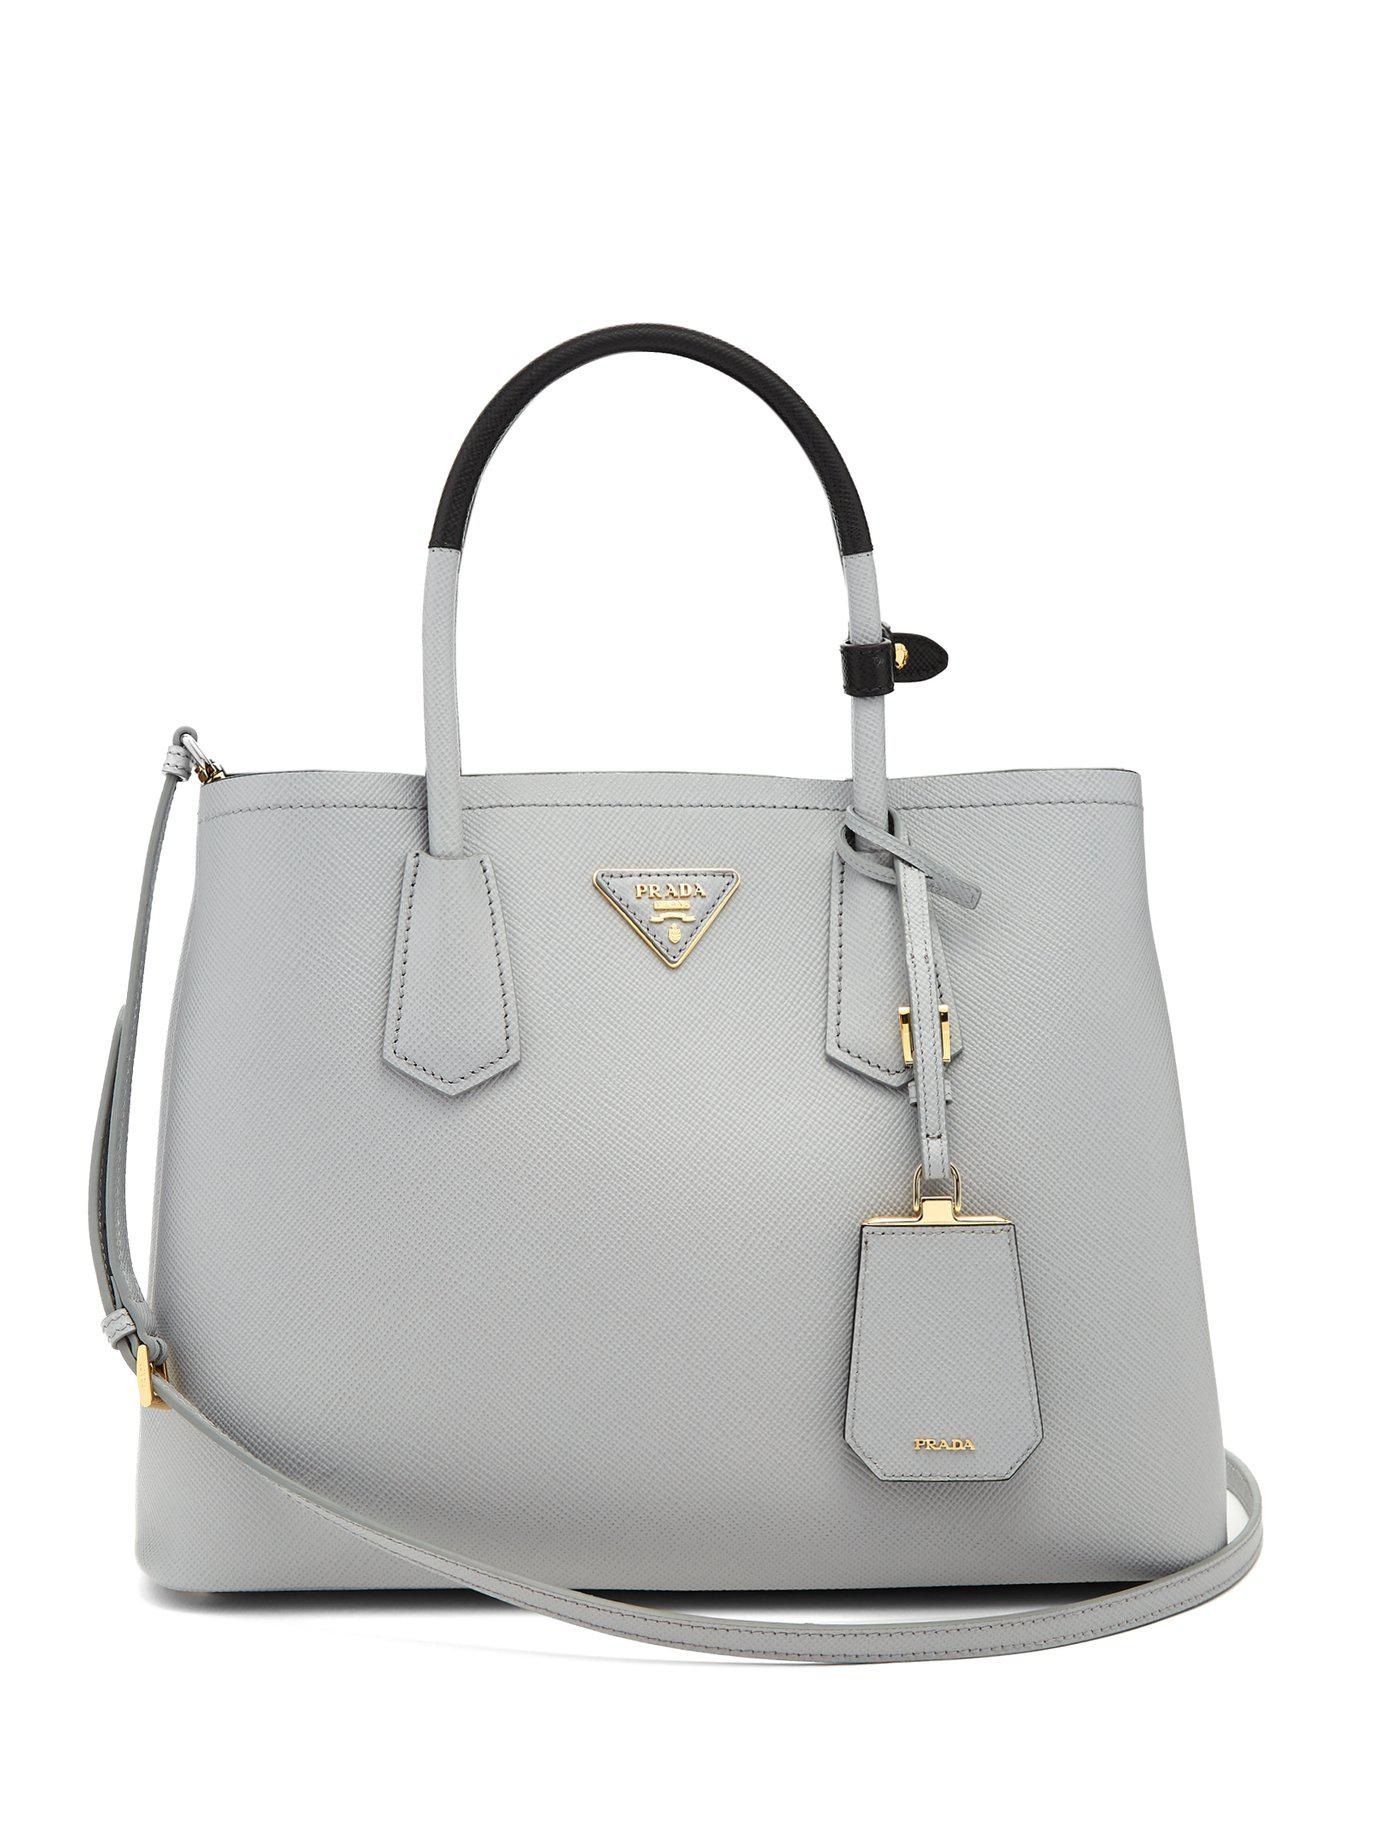 2d9d5bed546 greece large prada dual tote light gray 1df47 f508c  canada prada gray  double saffiano leather bag lyst. view fullscreen 9bb80 6780f